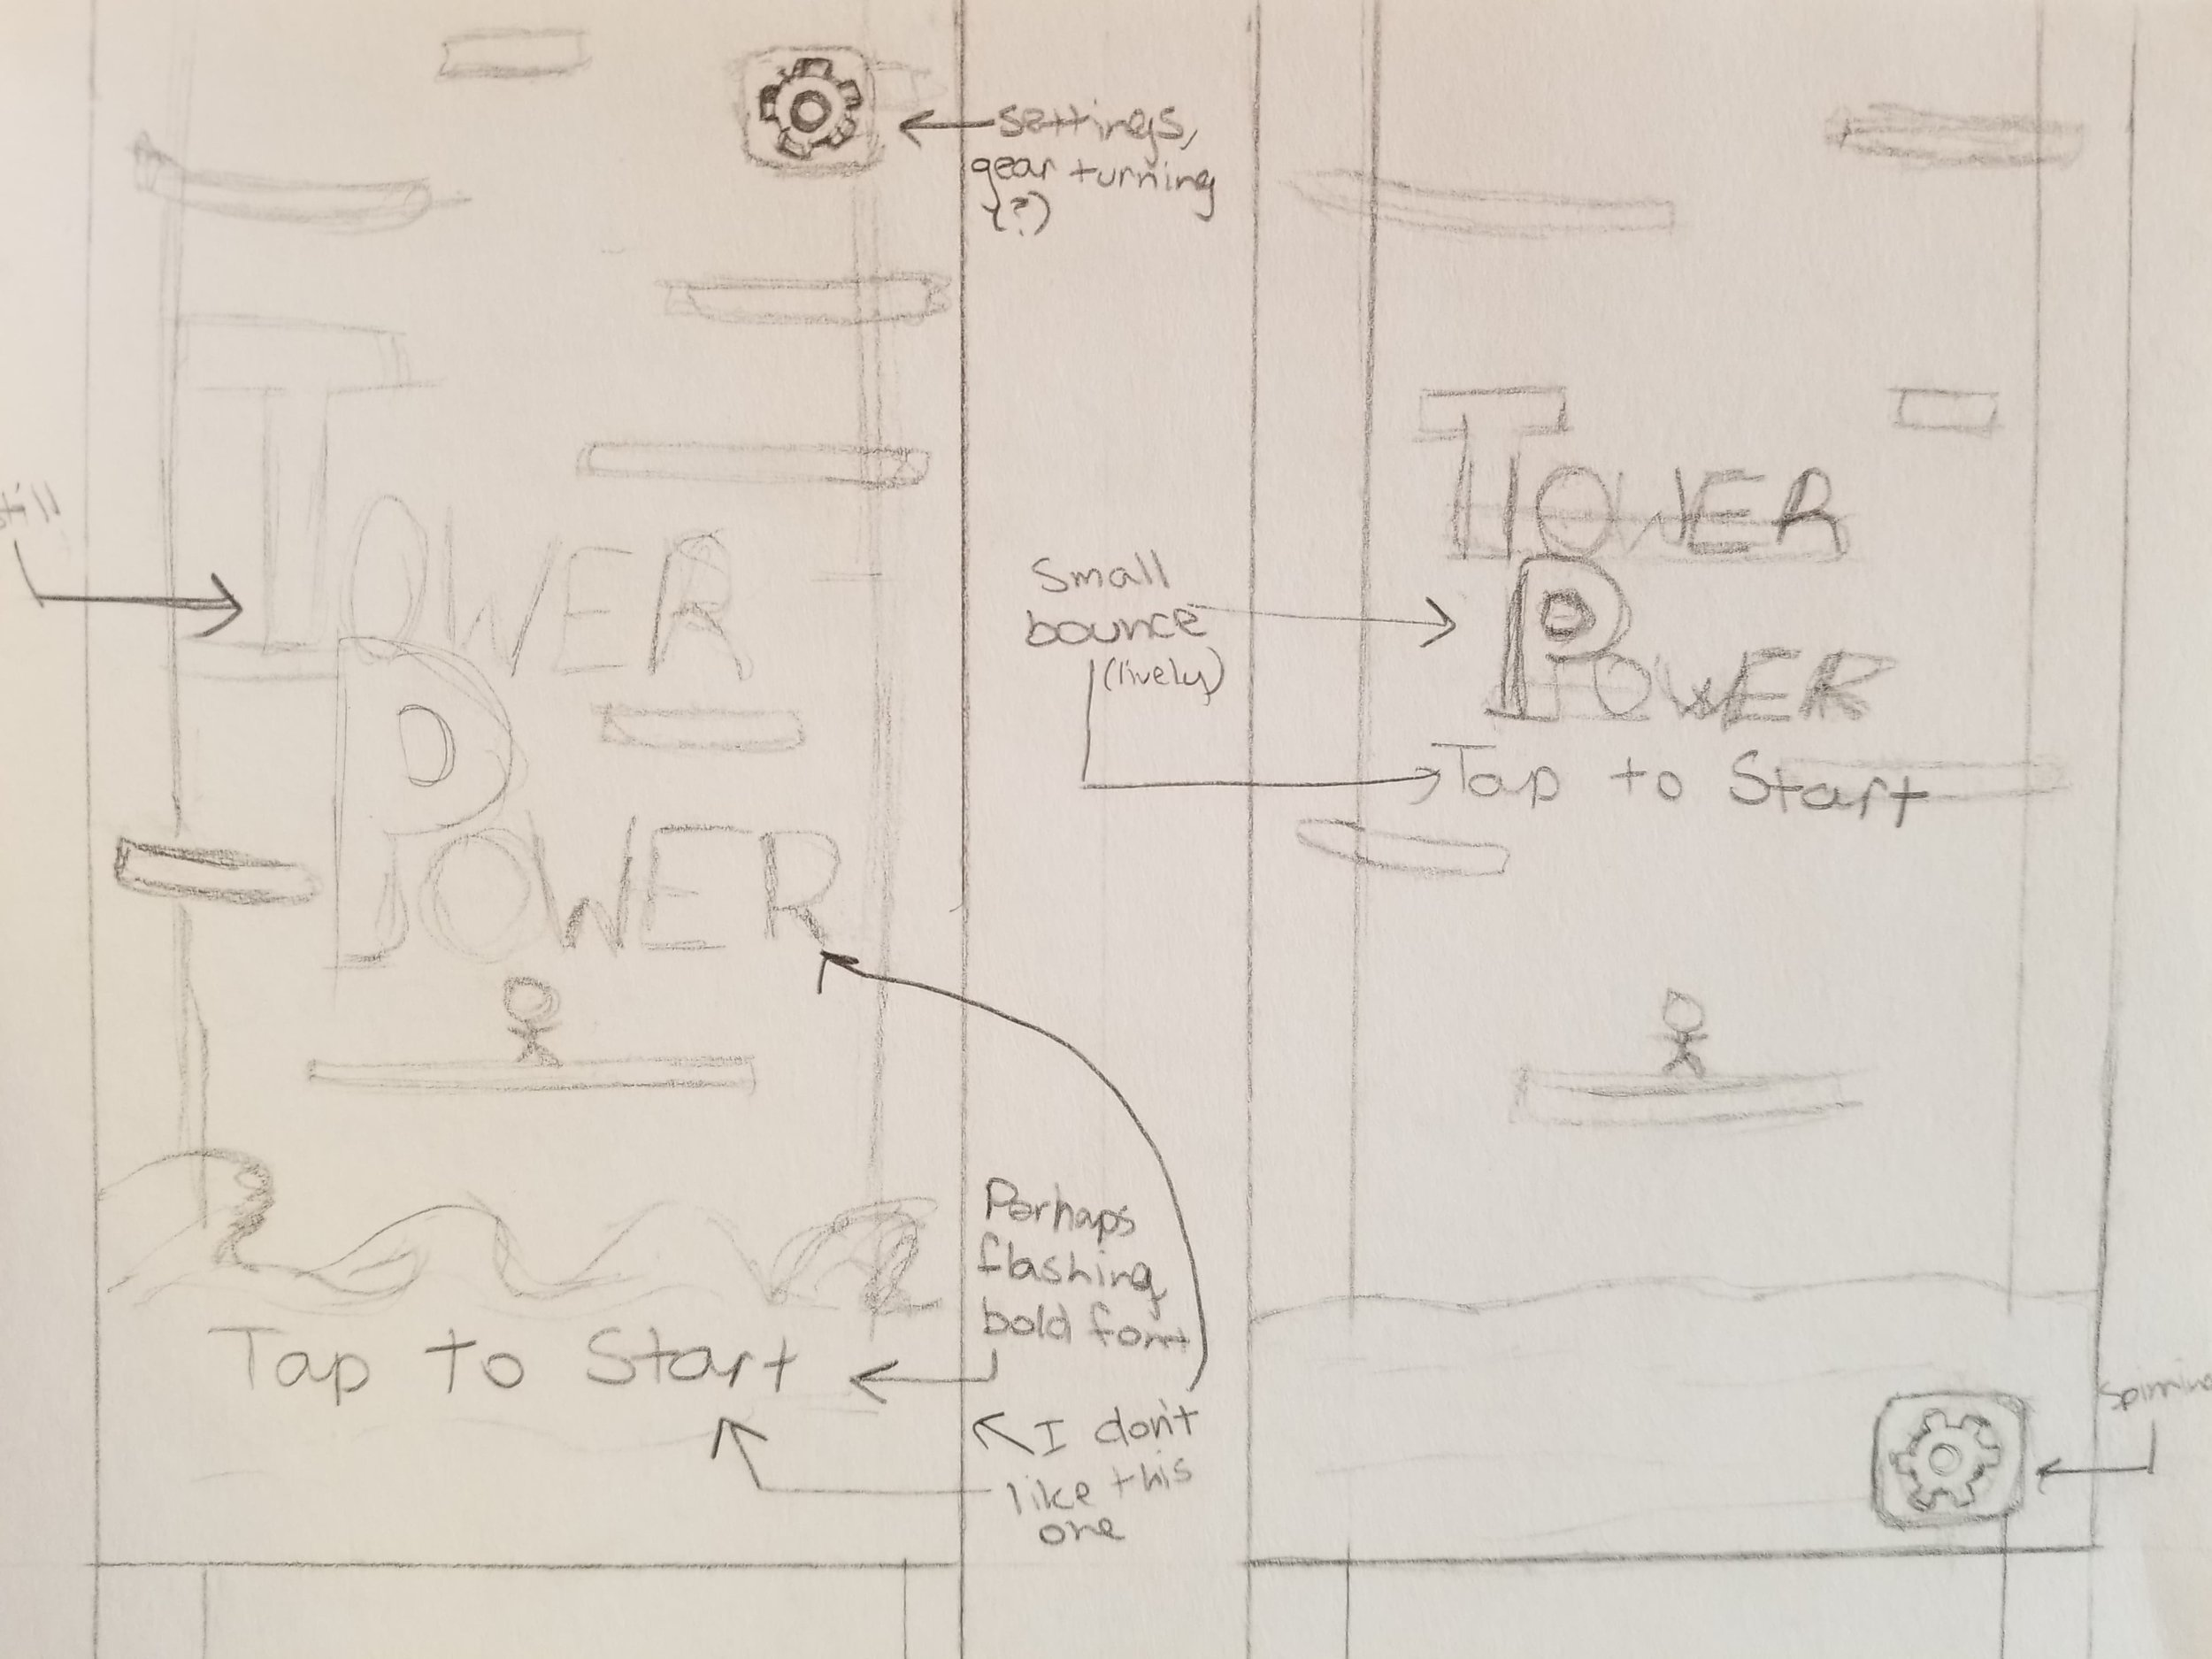 An initial title sketch for what used to be Tower Power, based off of a Hackathon project done by the same team!